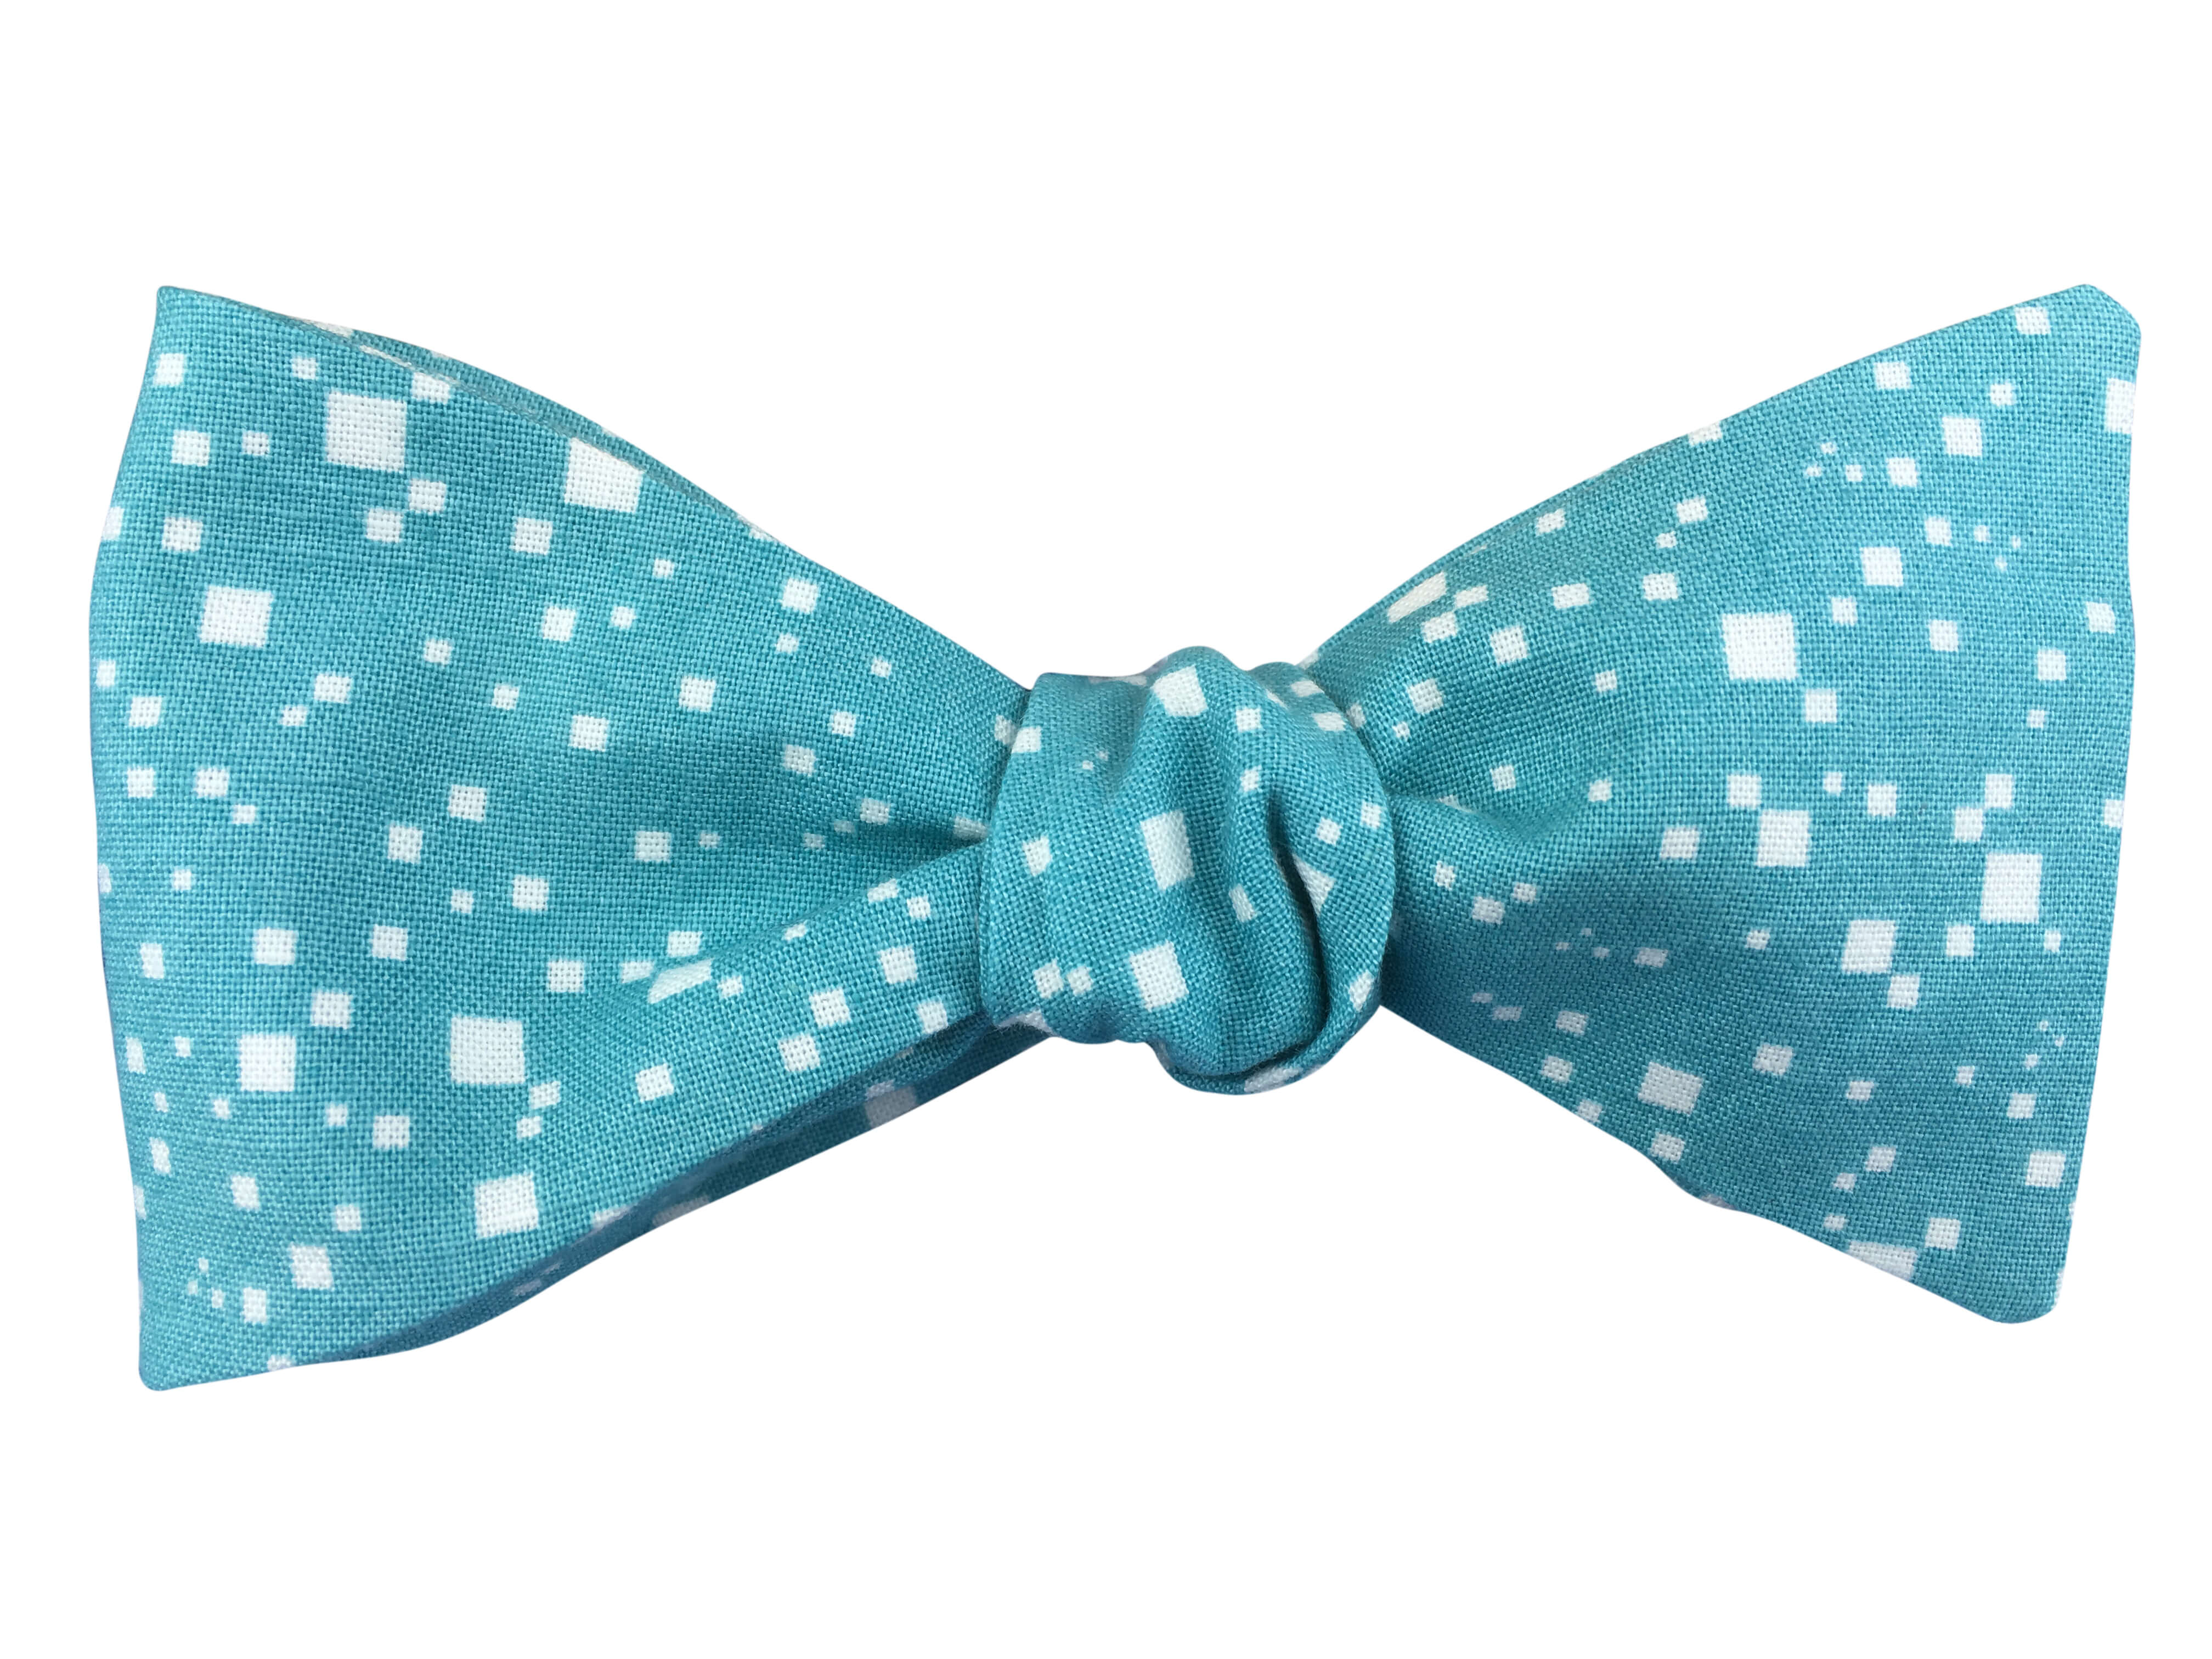 9e4f1edaacac Turquoise Pixels Self-Tie Bow Tie - Blue Eyes Bow Ties